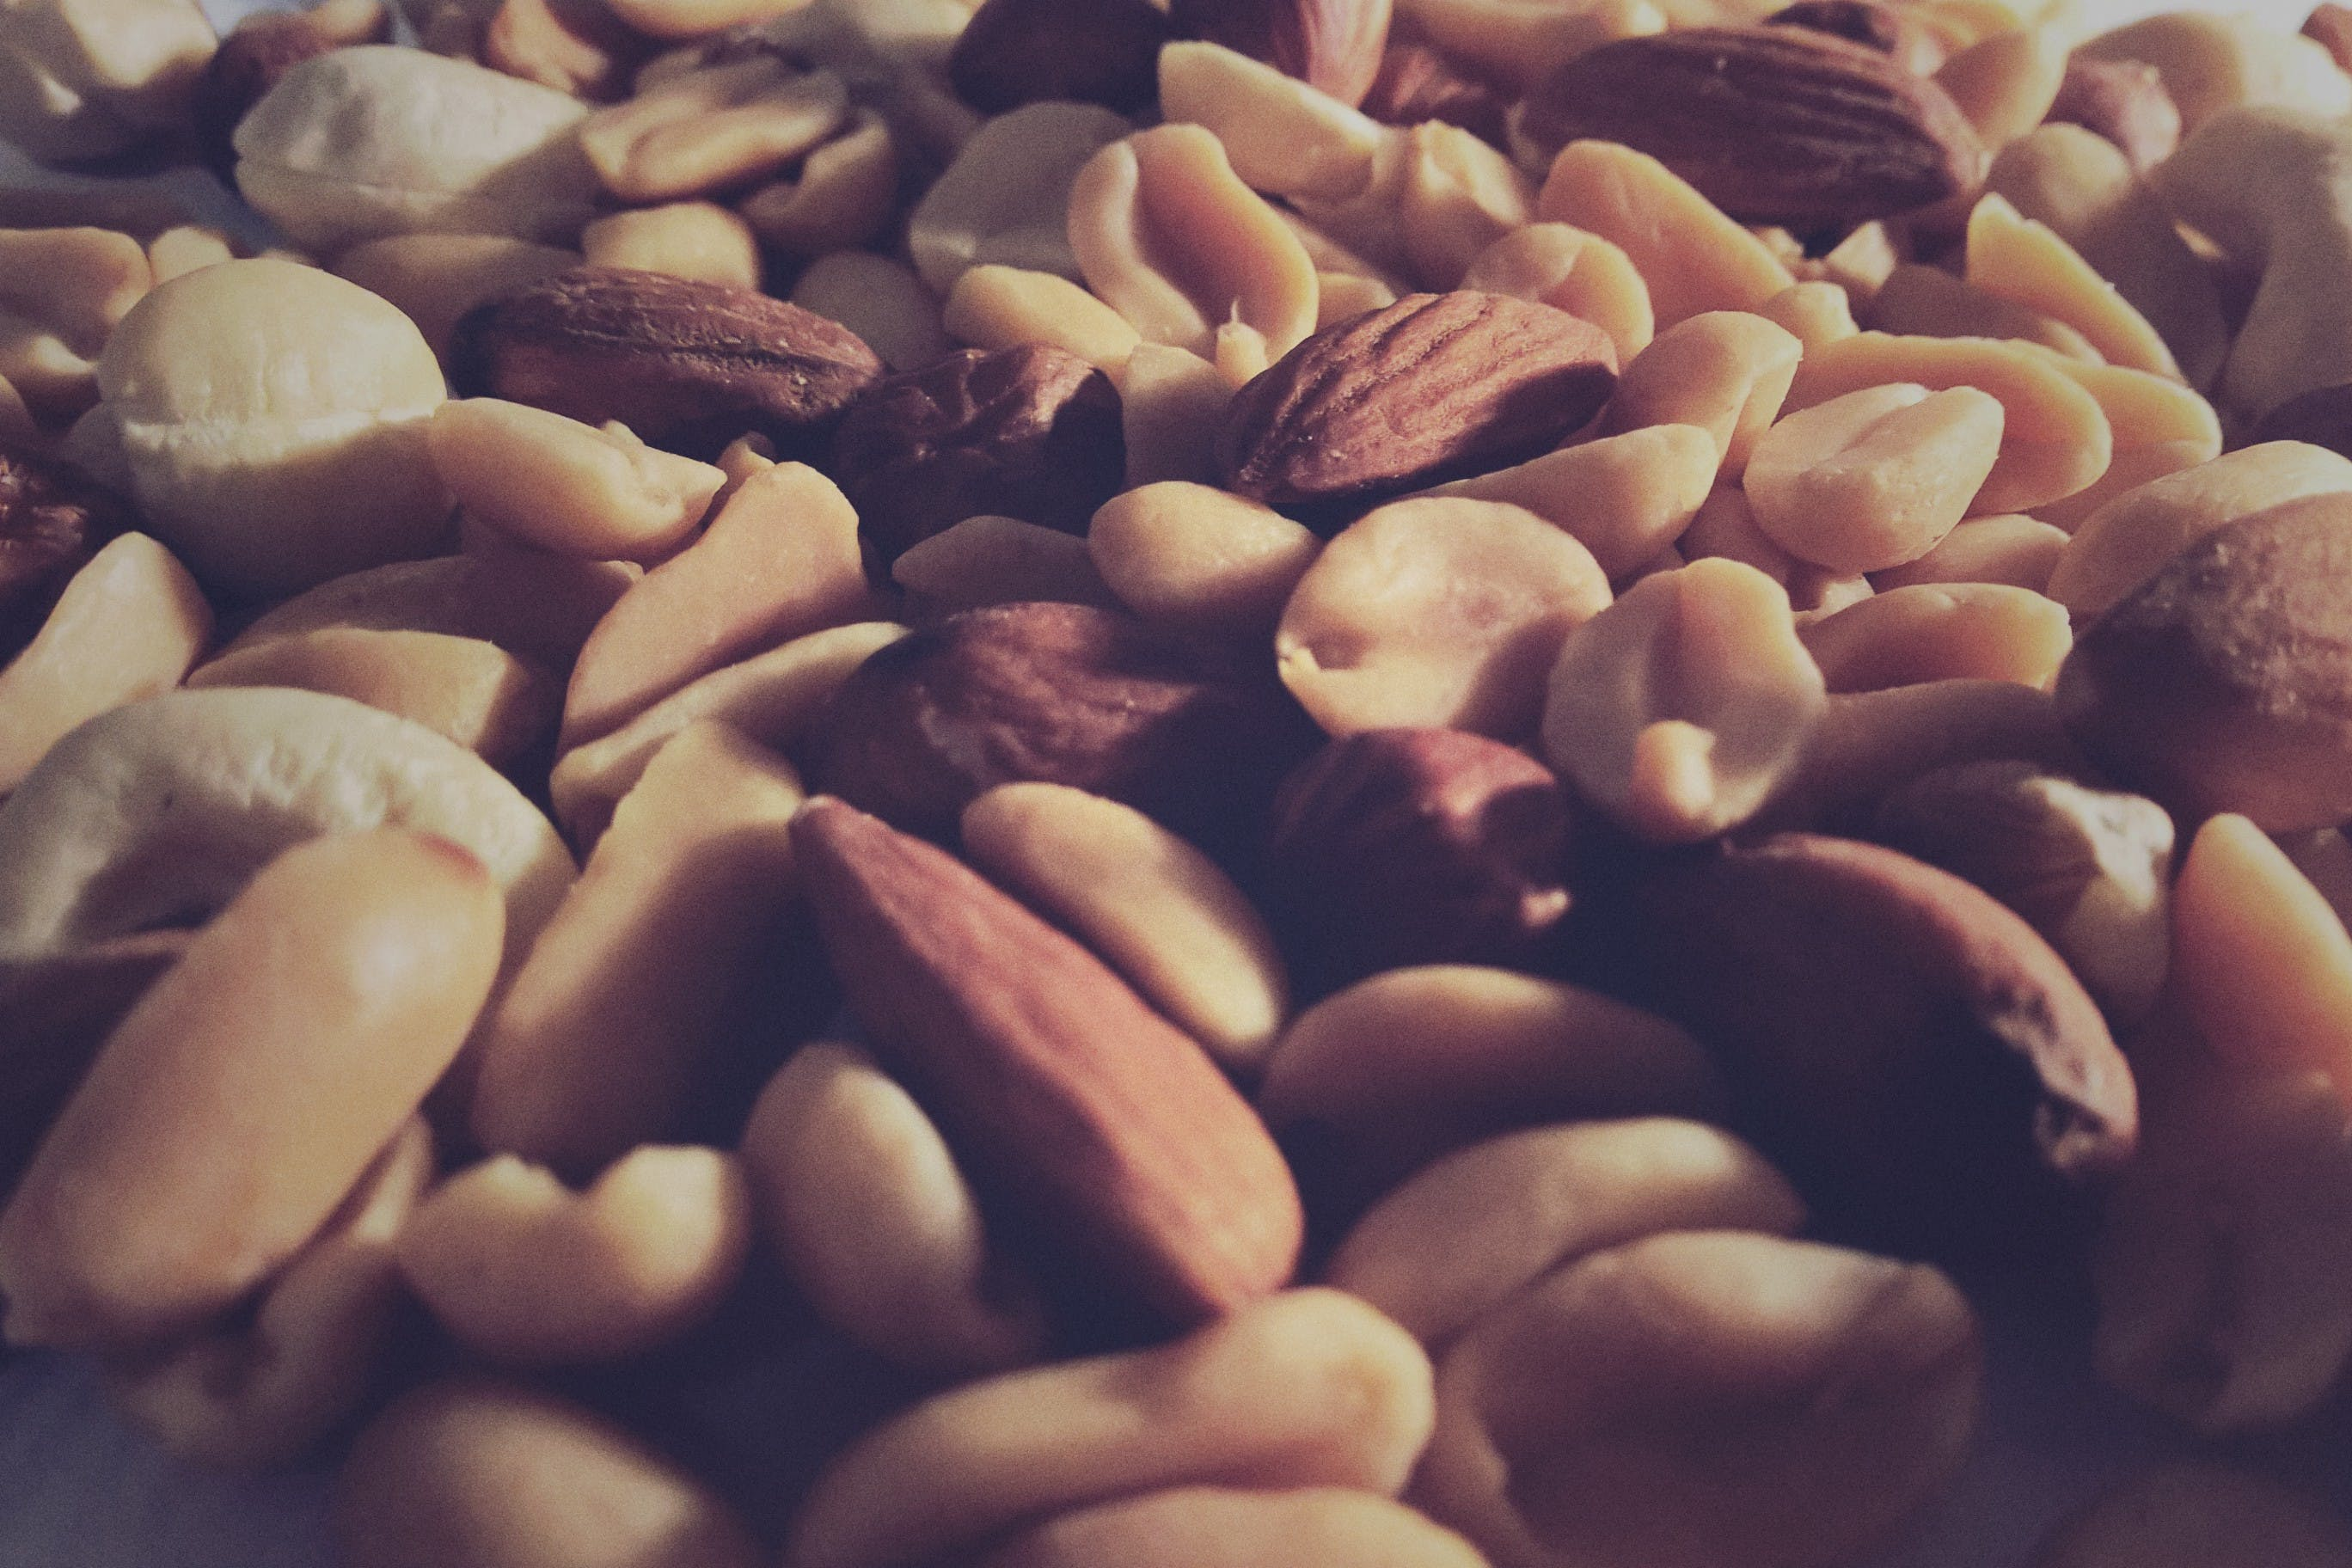 Free stock photo of food, healthy, beans, texture